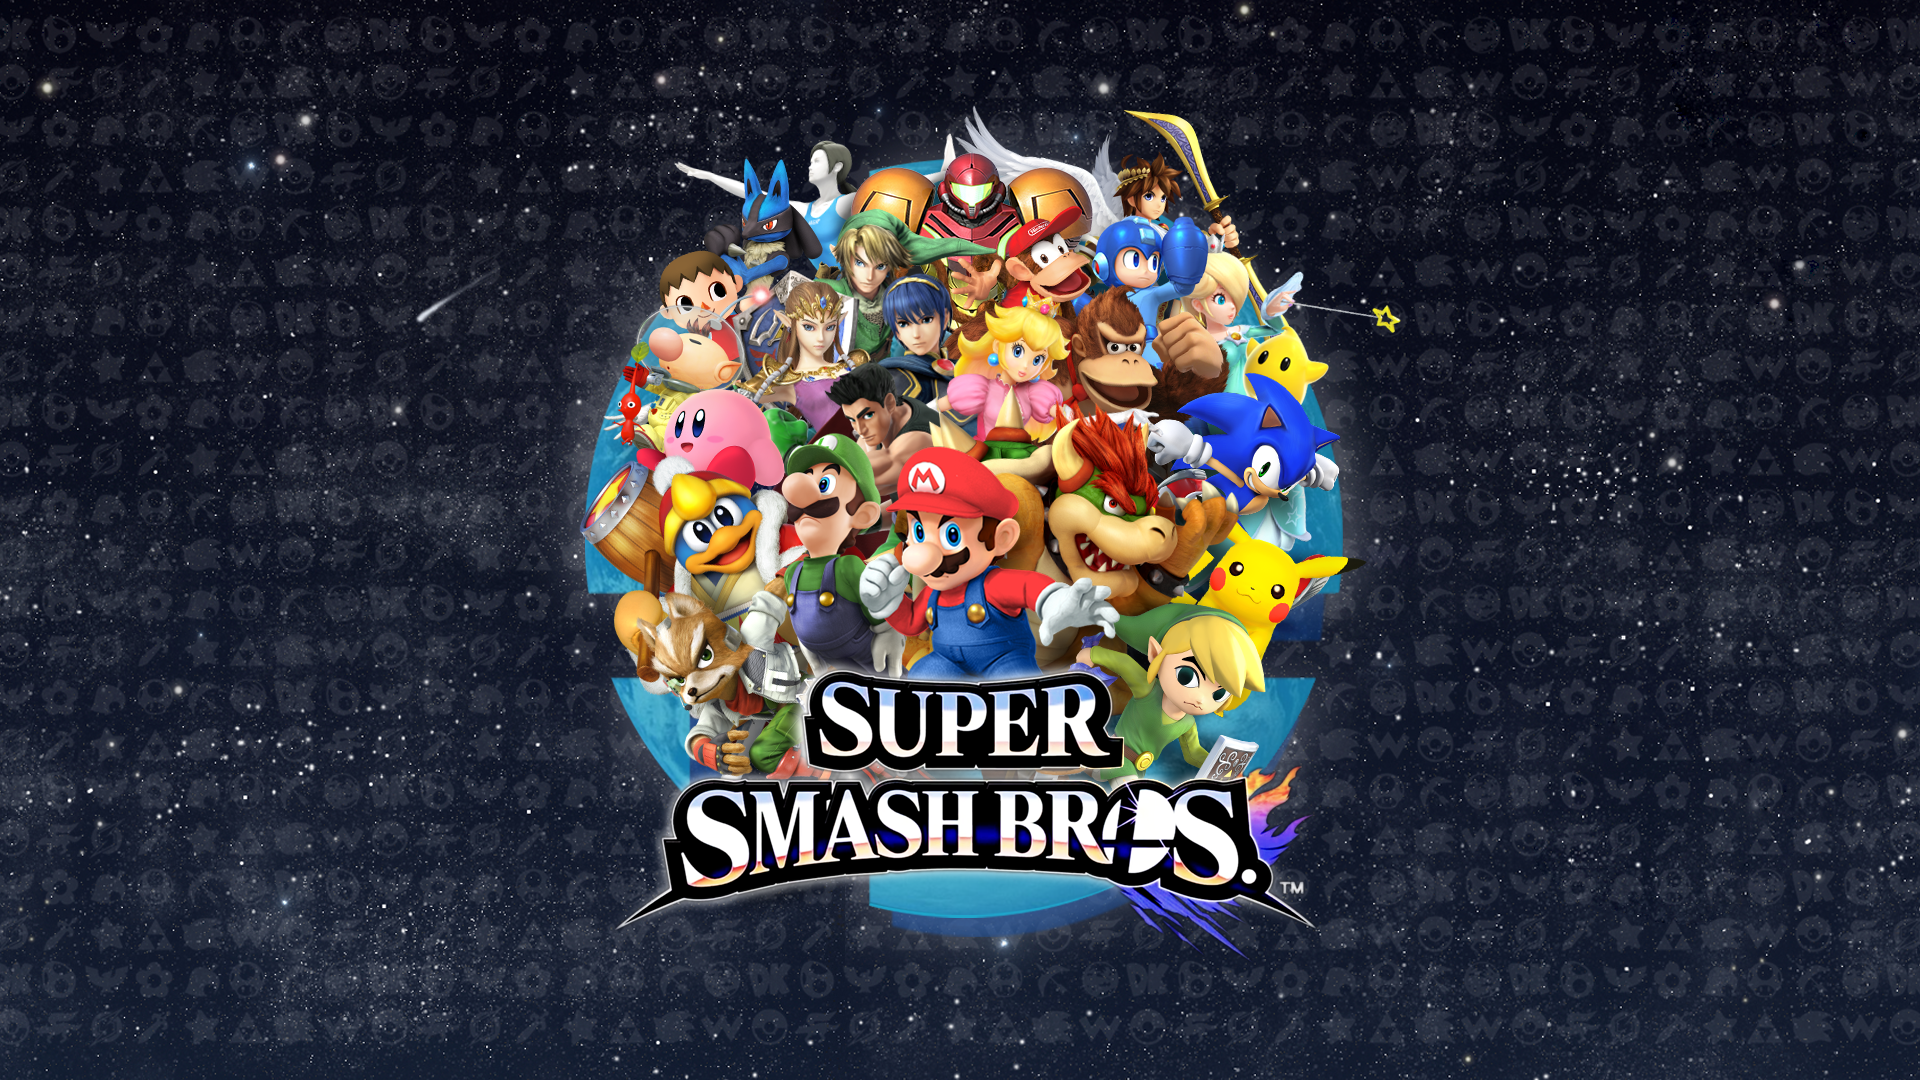 Super Smash Bros For Nintendo 3DS And Wii U Full HD Wallpaper